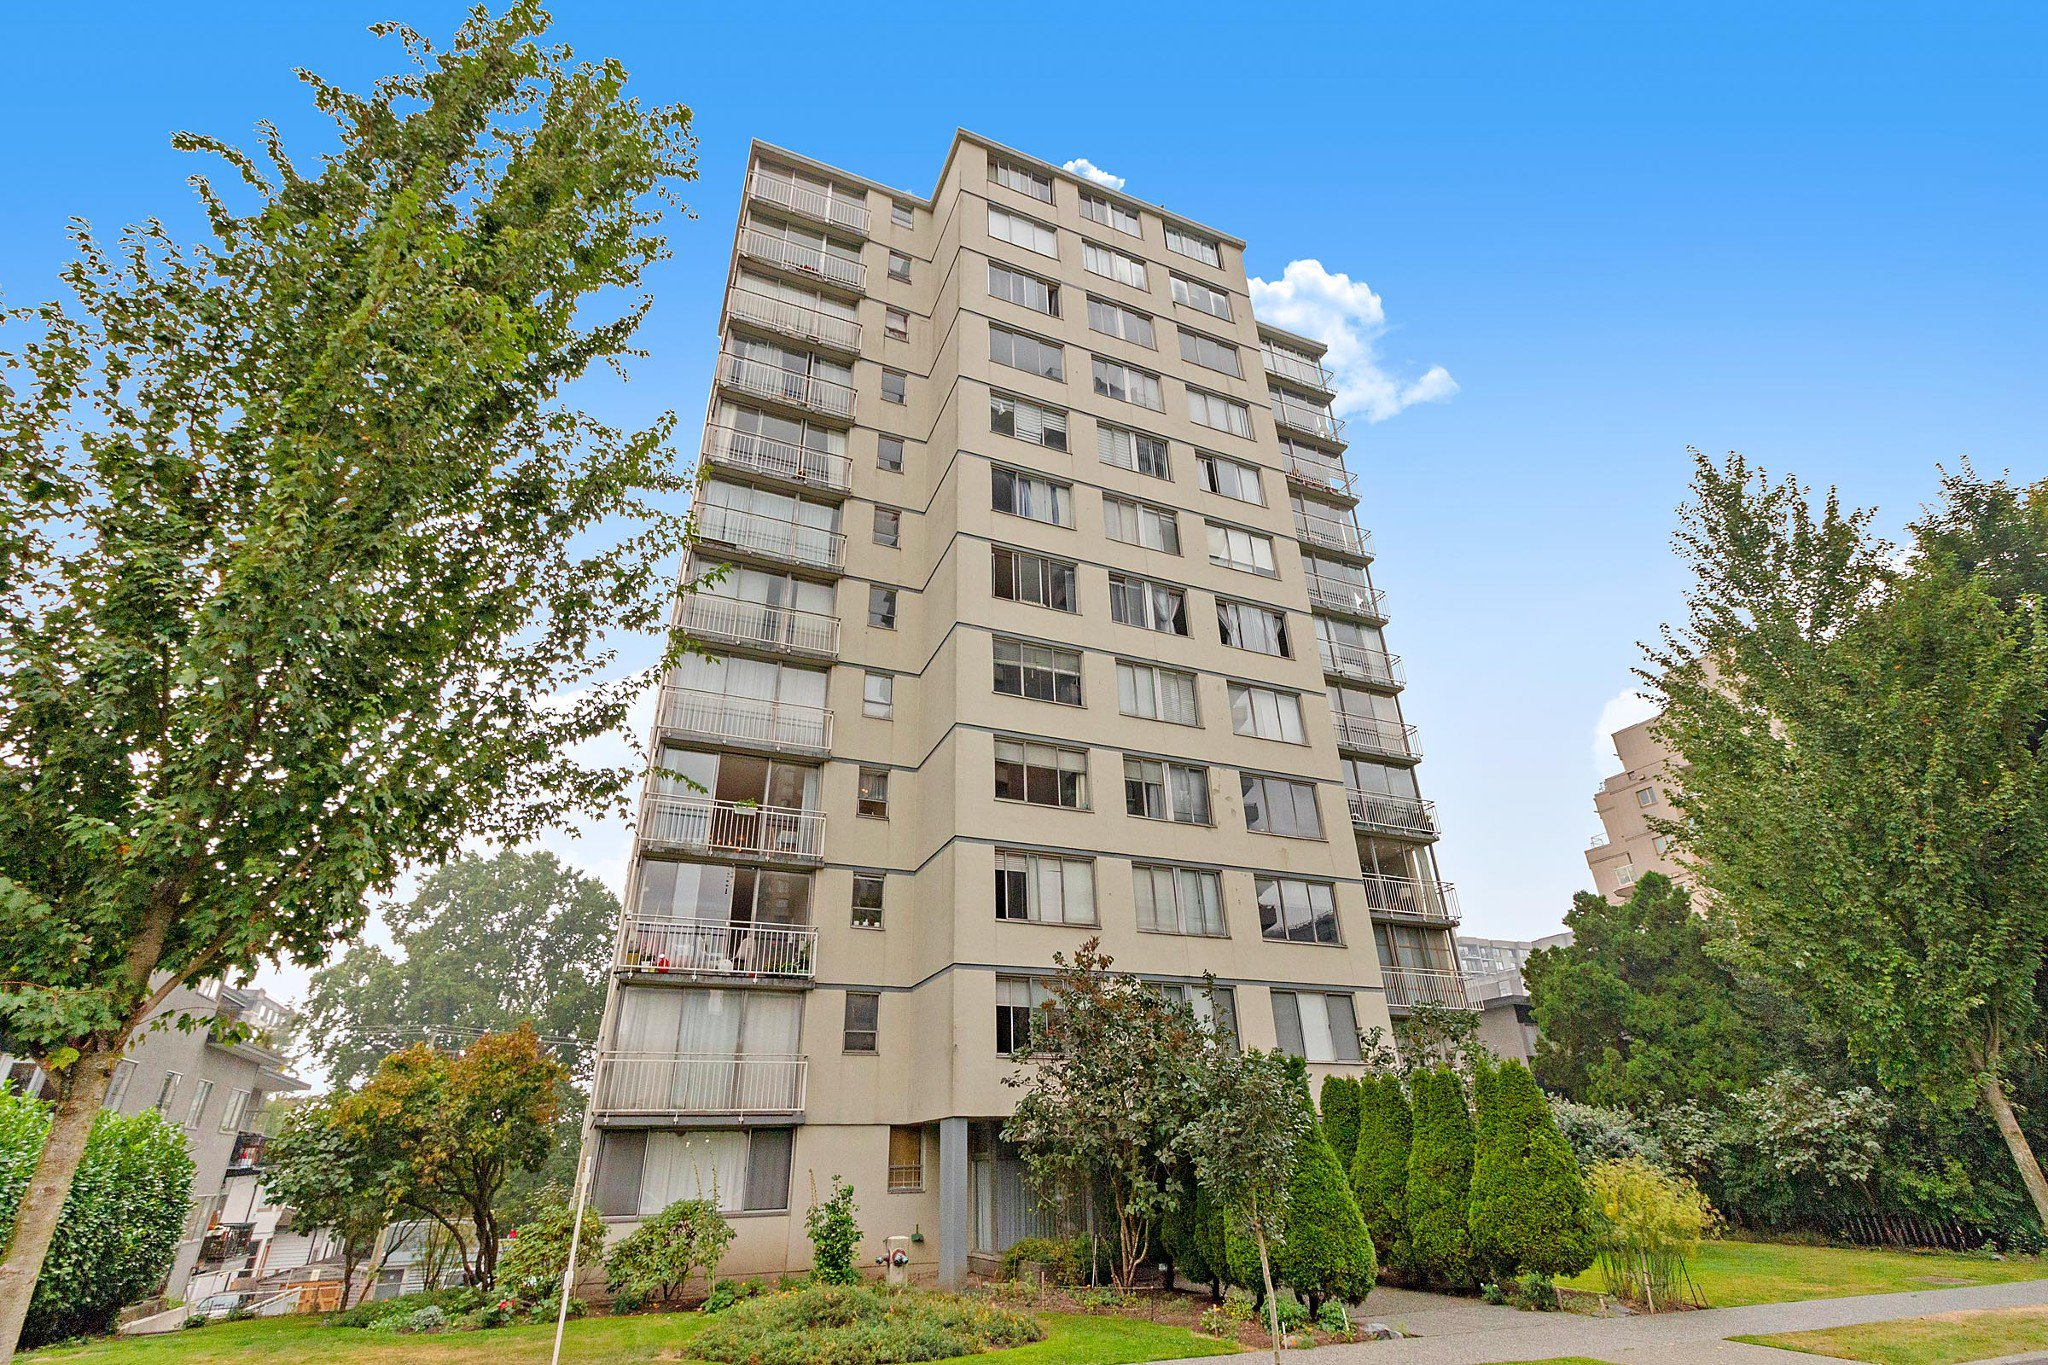 """Main Photo: 406 1250 BURNABY Street in Vancouver: West End VW Condo for sale in """"THE HORIZON"""" (Vancouver West)  : MLS®# R2500551"""